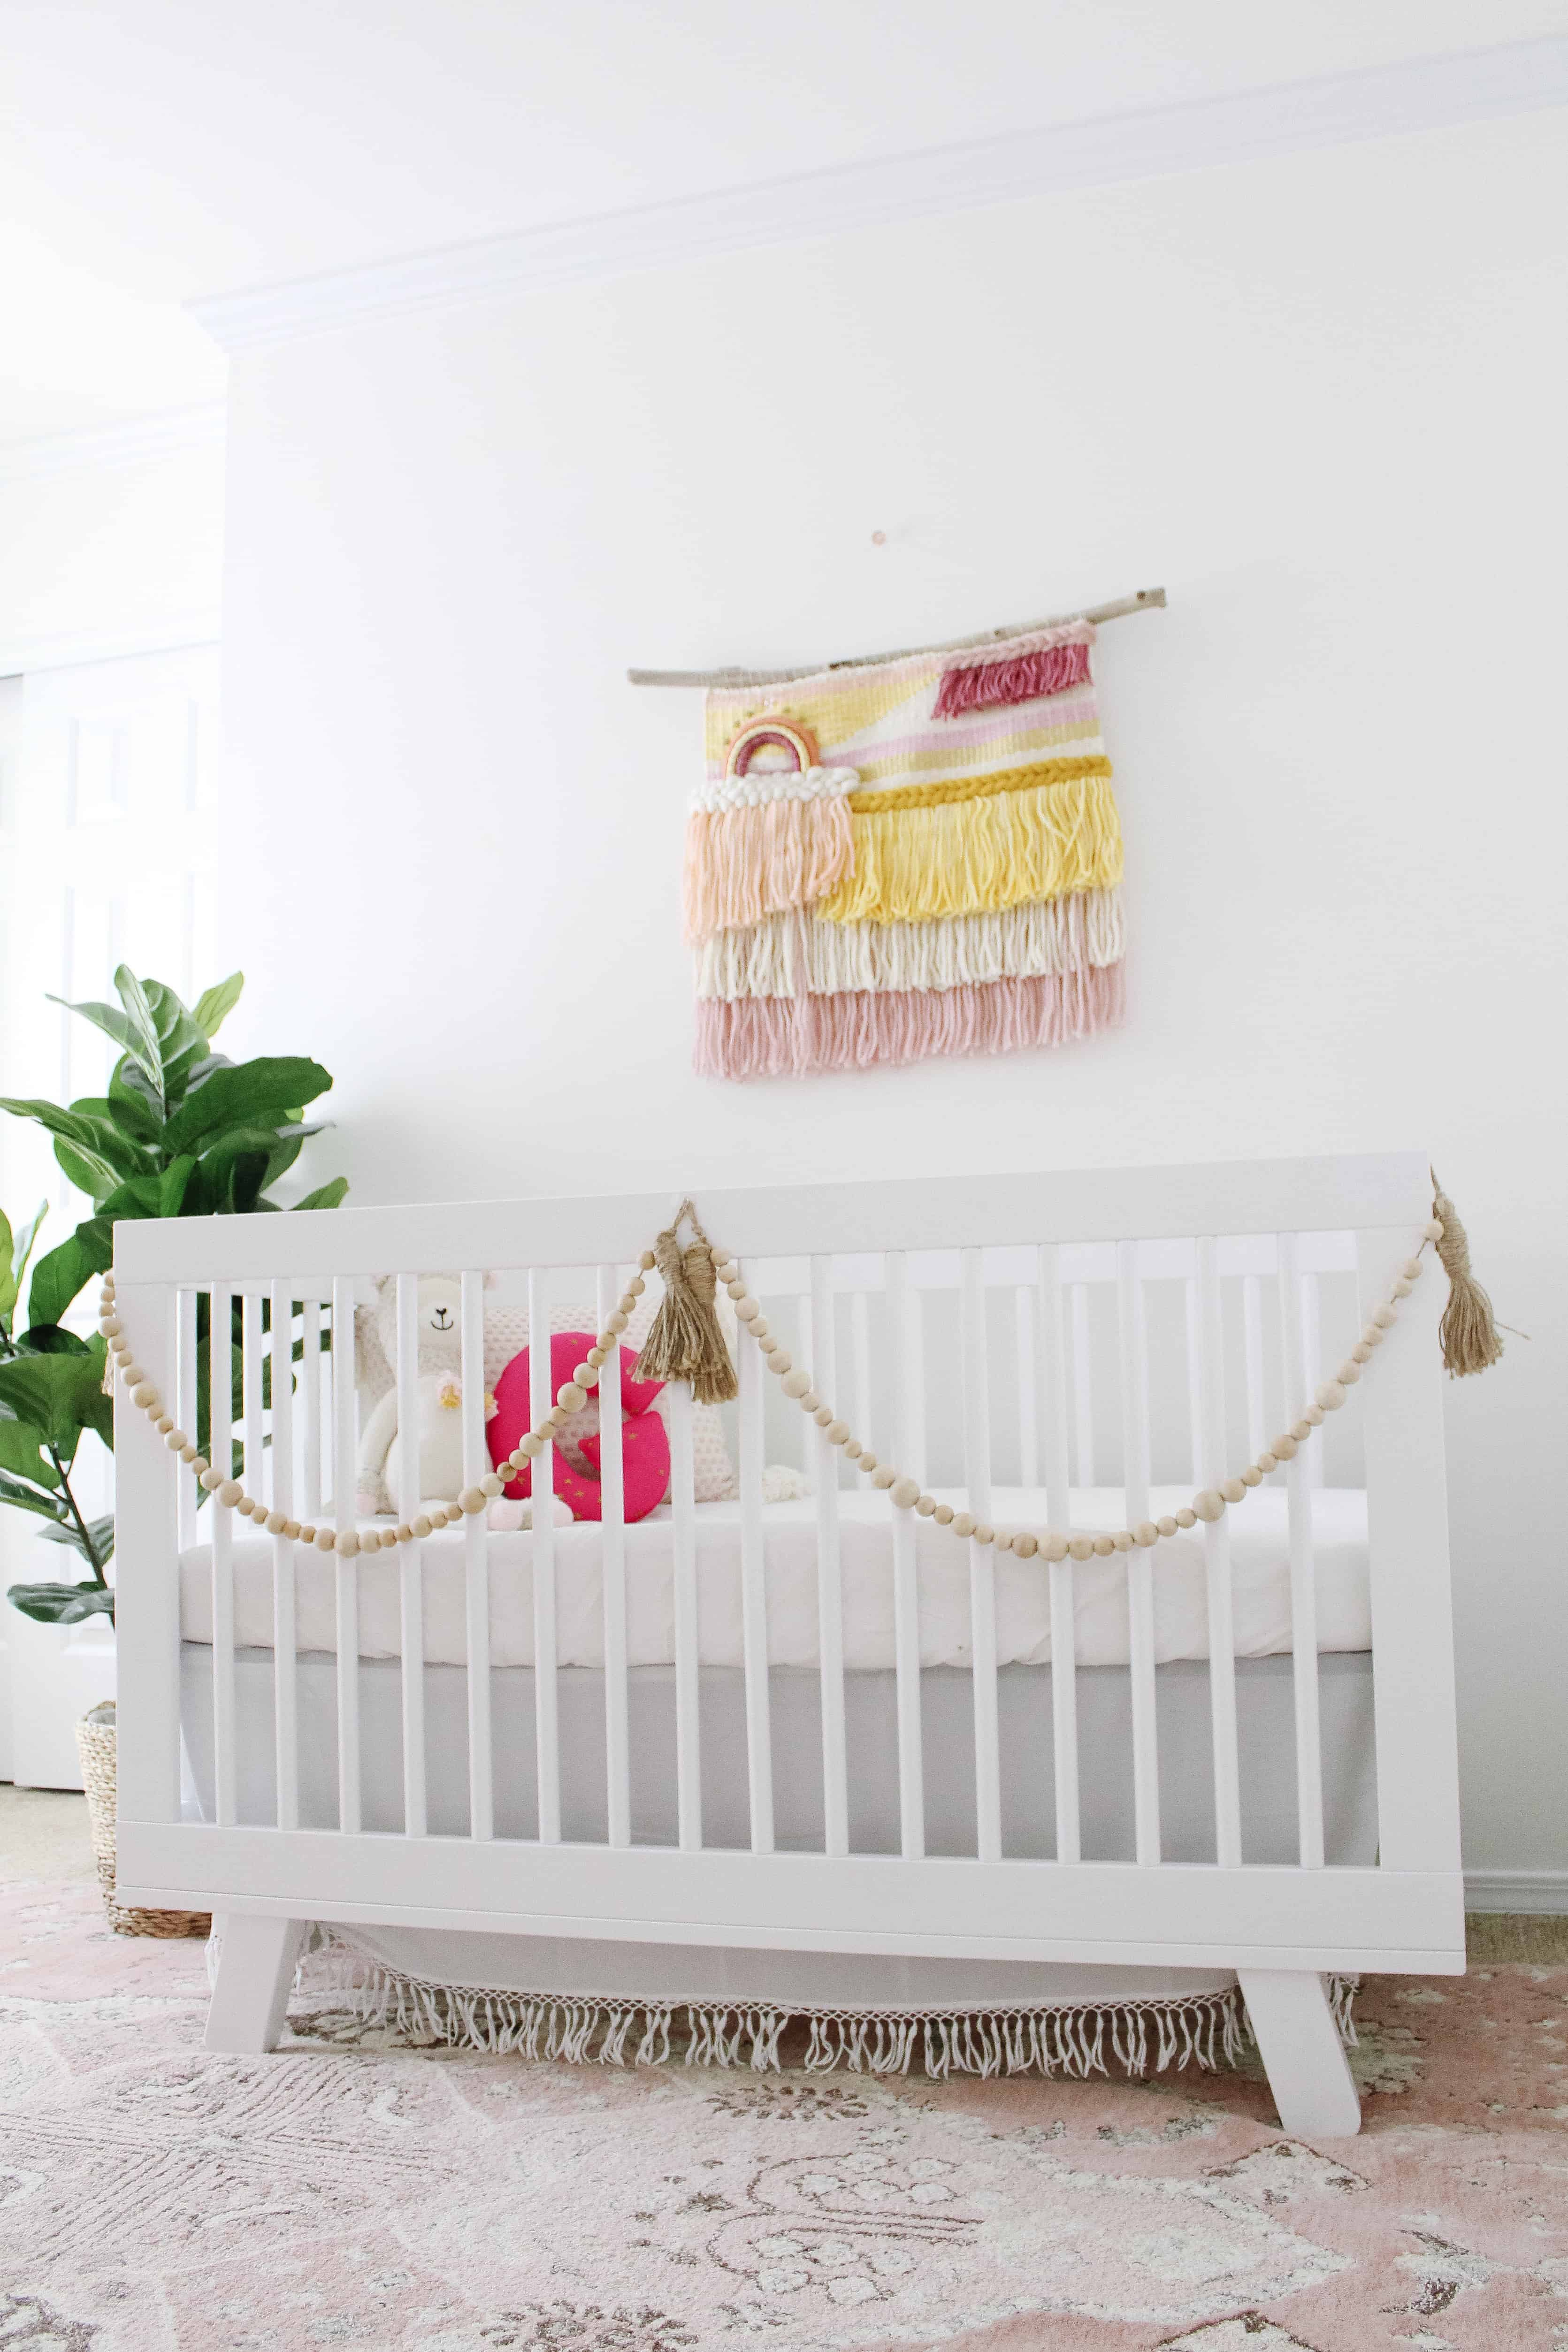 White crib with macrame hanging over